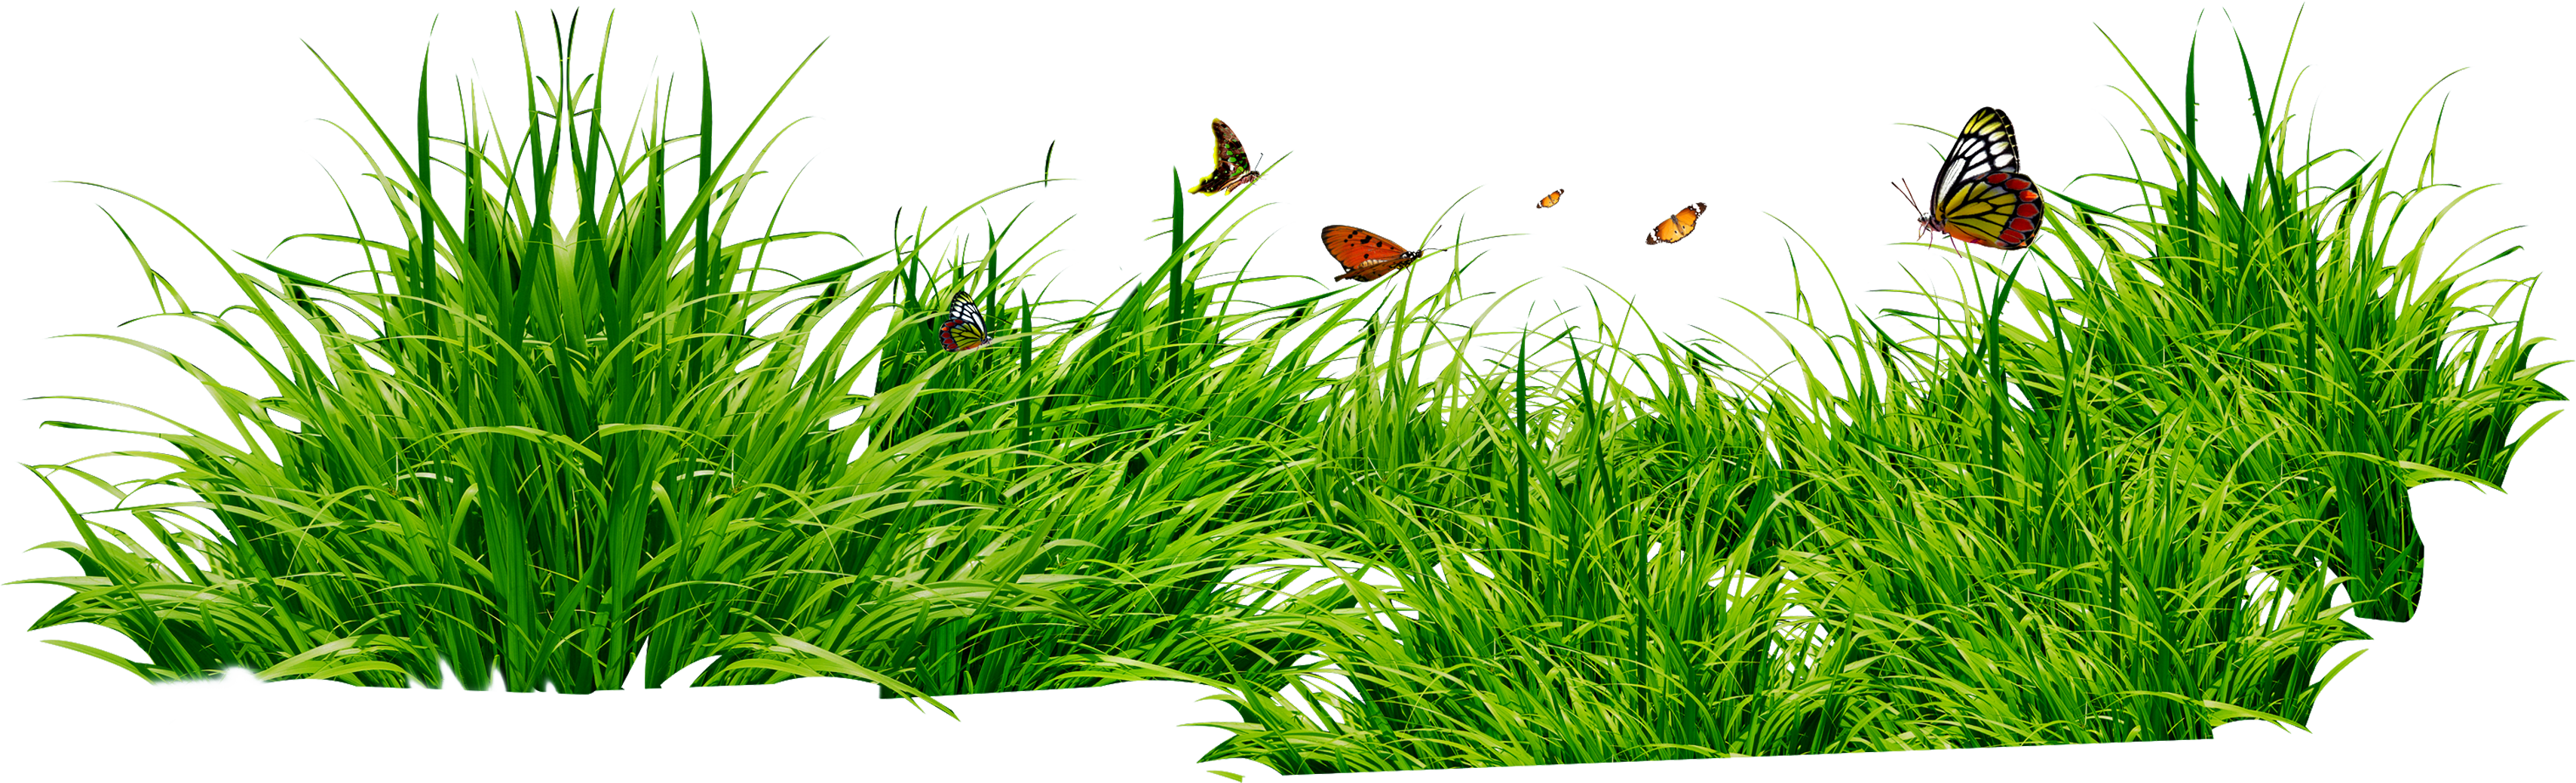 Grass plant png. Images pictures image green